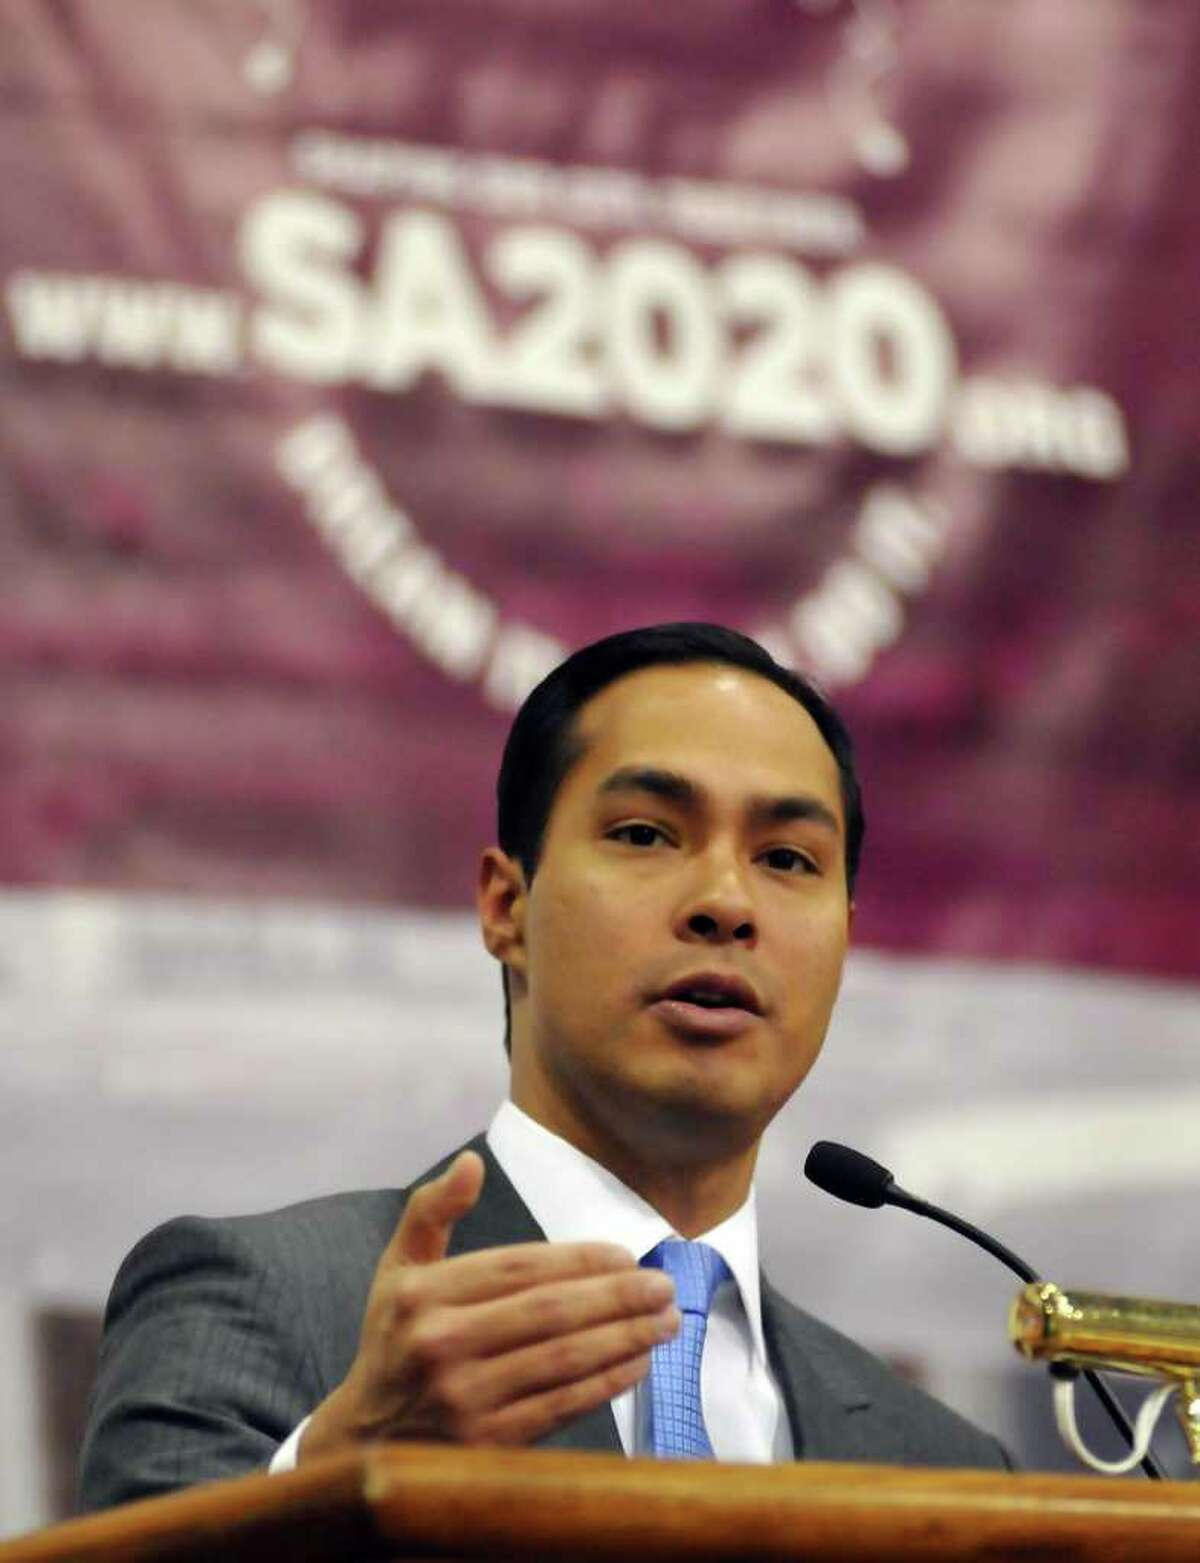 Mayor Castro speaks to open the SA2020 Community Forum in December at St. Mary's University.